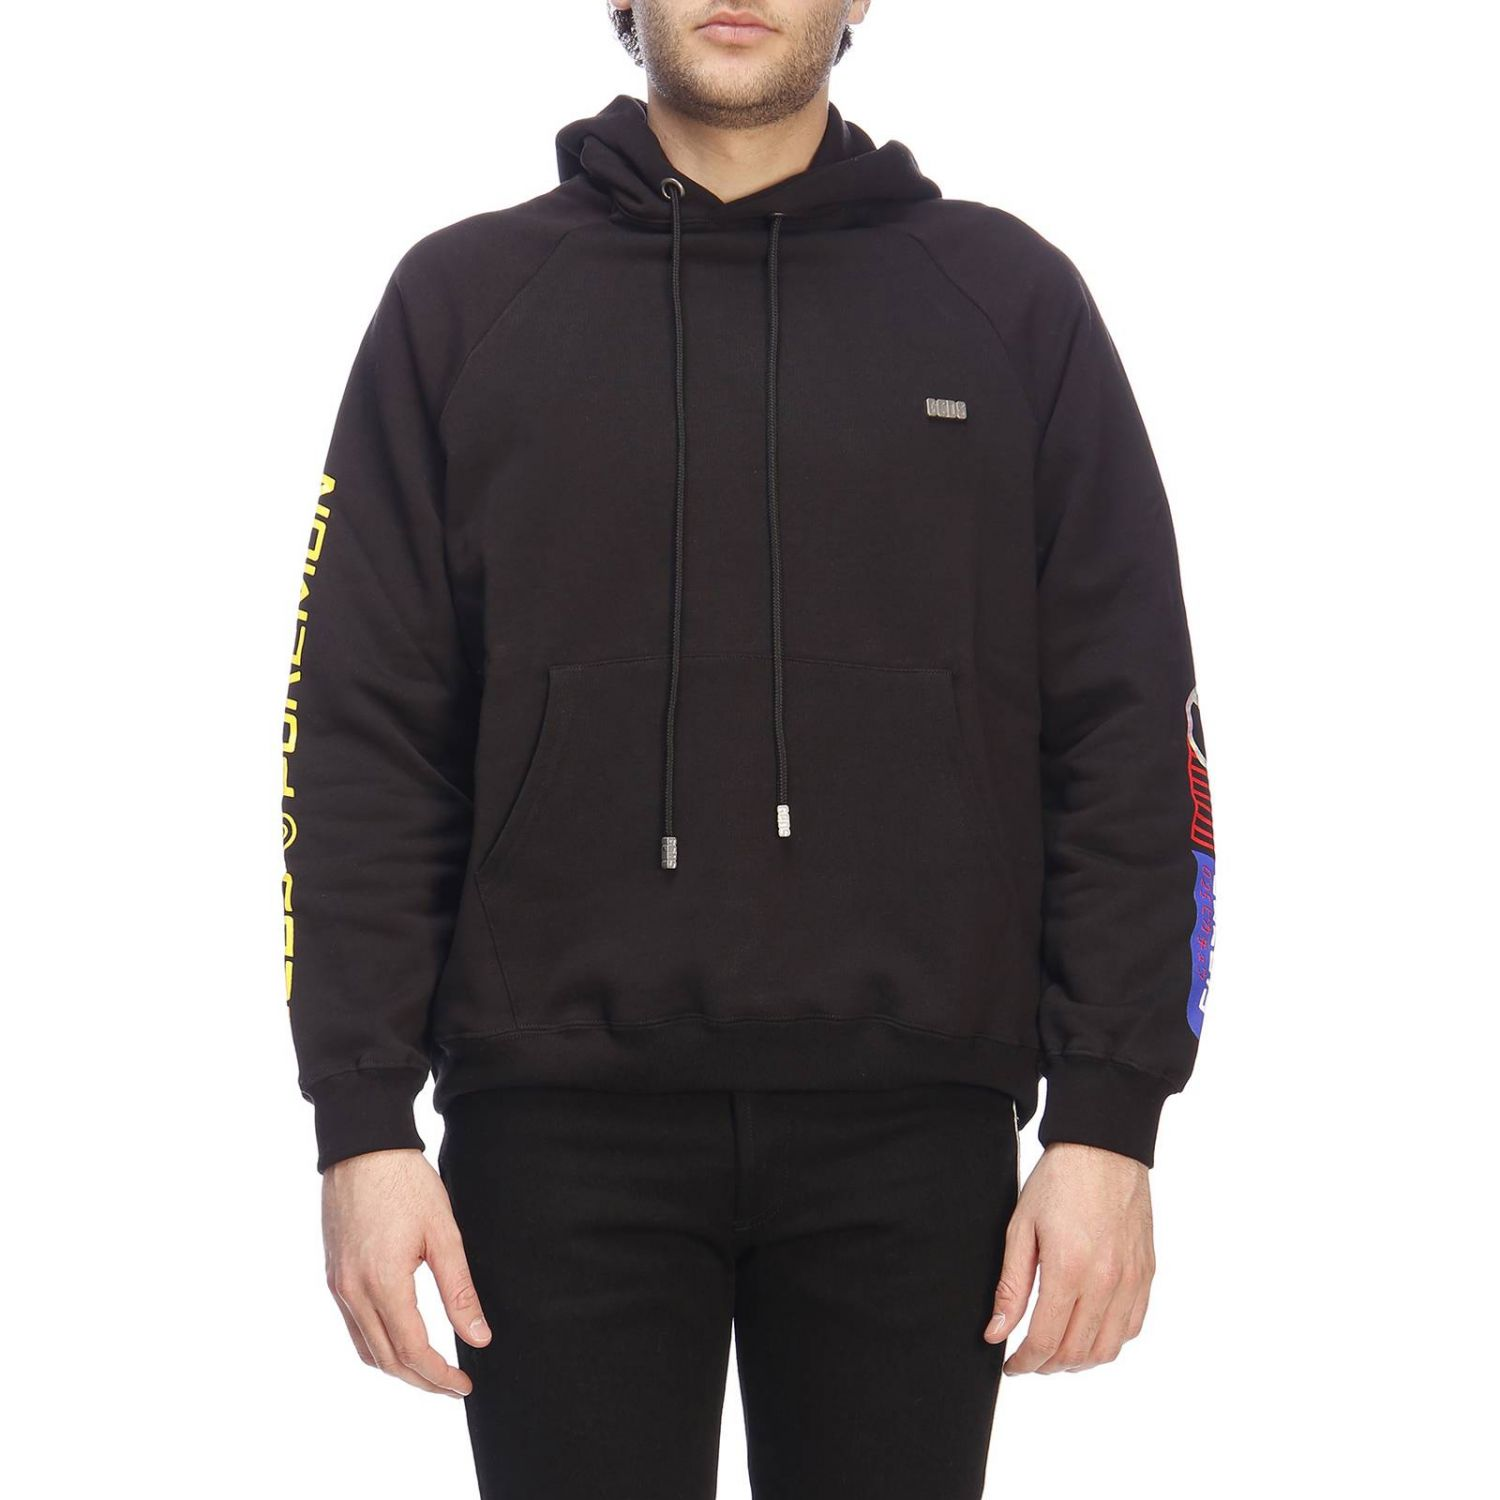 Jumper men Gcds black 1